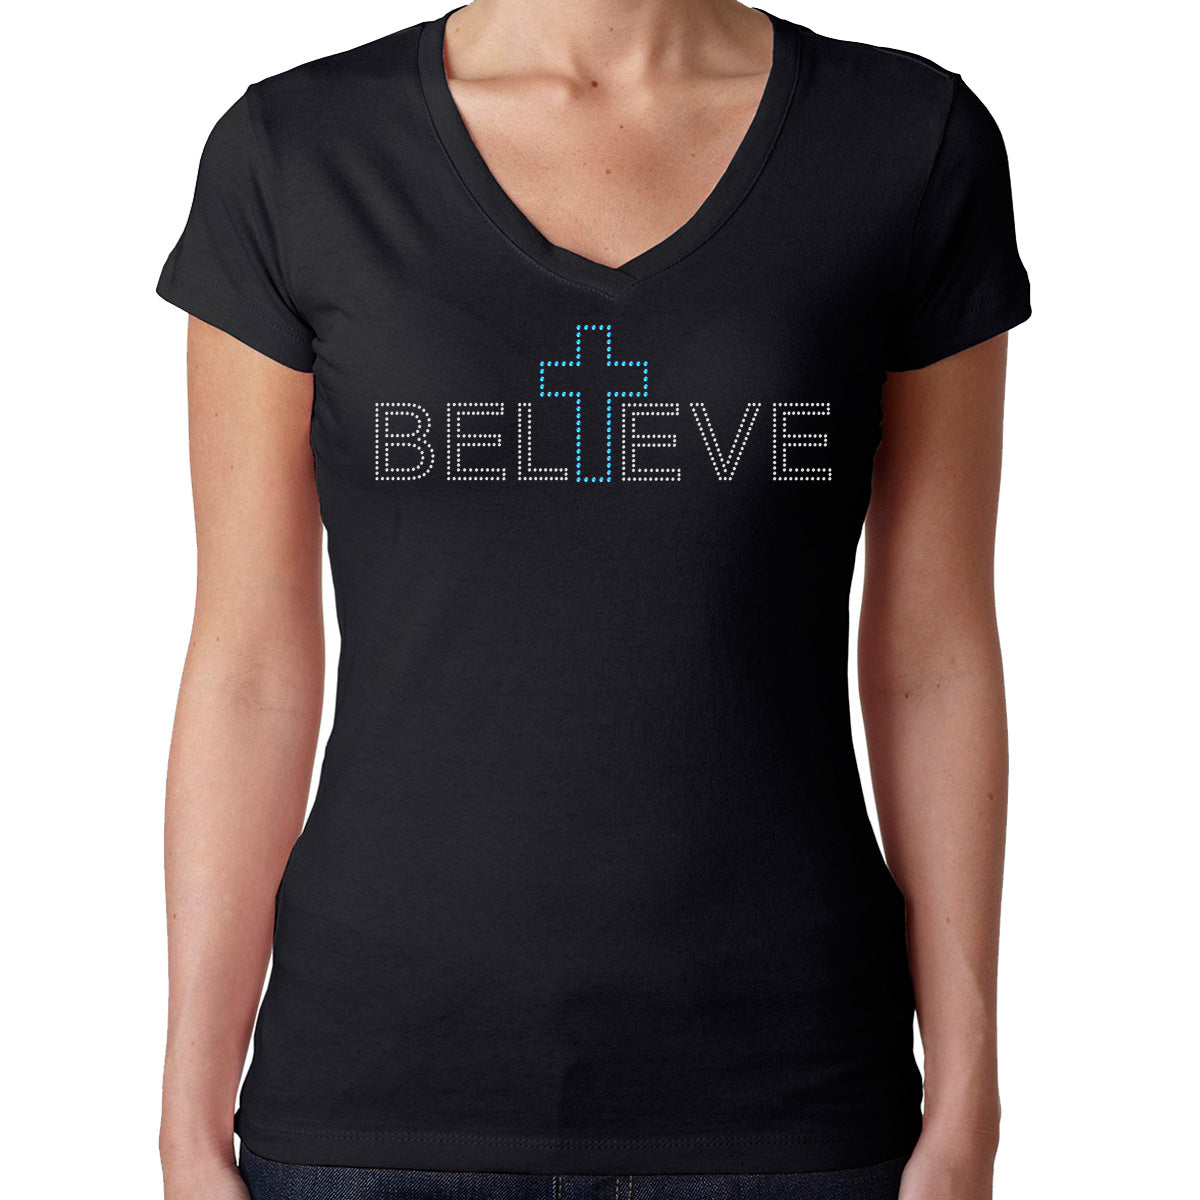 Womens T-Shirt Rhinestone Bling Black Fitted Tee Believe Blue Cross